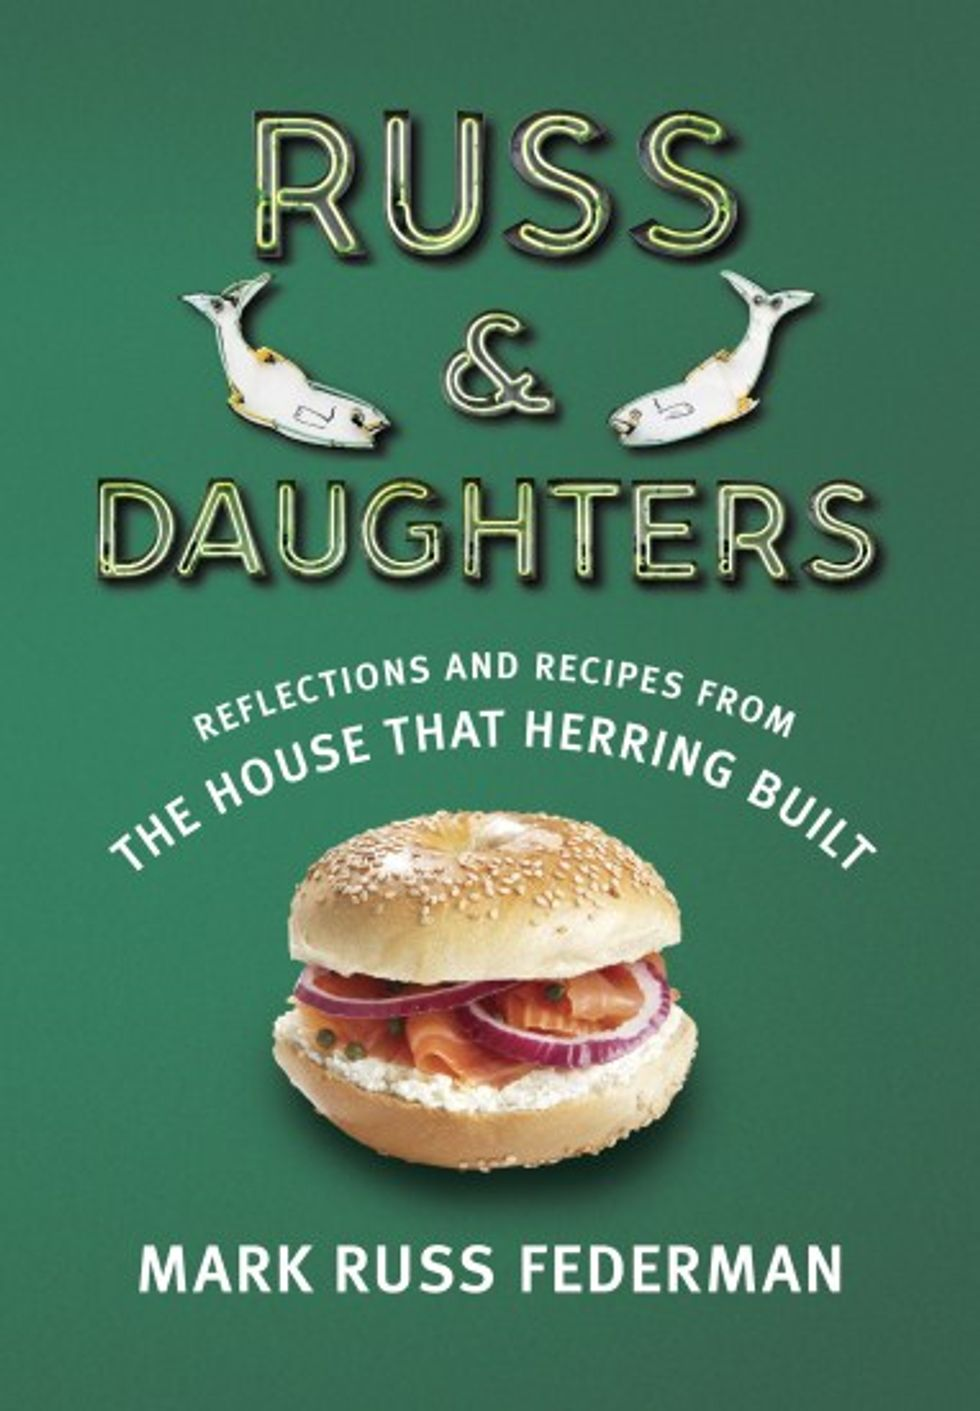 Mark Russ Federman on His New Russ & Daughters Memoir